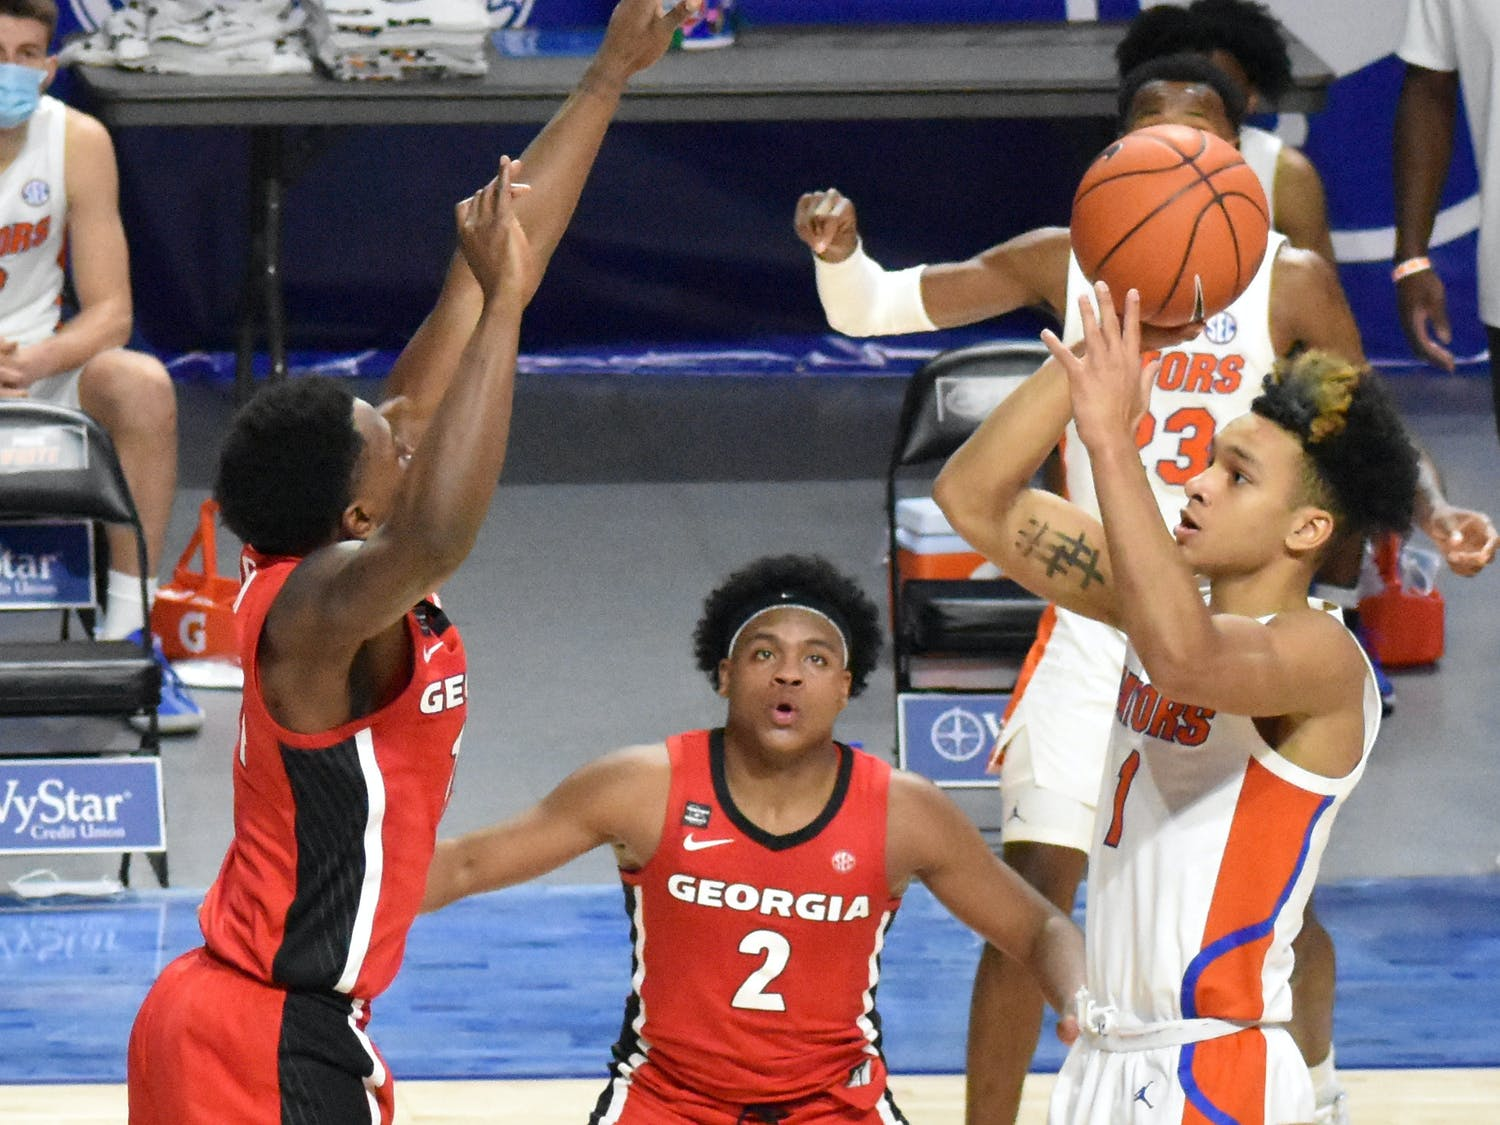 UF's performance Saturday contrasts with its lifeless 18-point drubbing against the same Kentucky team a month ago and indicates Florida's greatest area of growth: resilience. Photo from UF-Georgia game Feb. 20.